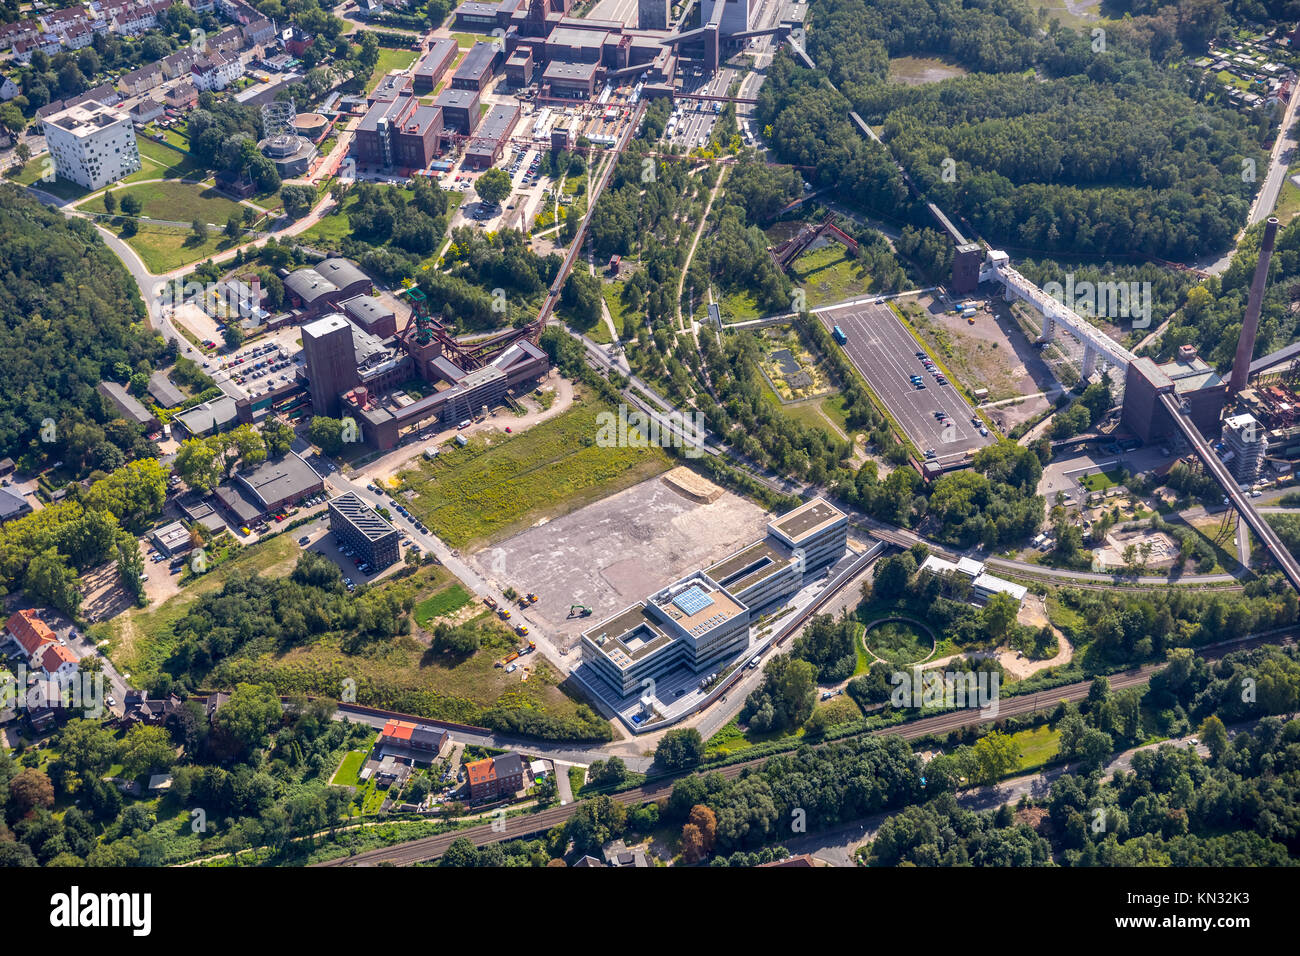 Zollverein, a World Heritage Site, Zollverein Essen-Katerberg, Essen, Nordrhein-Westfalen, Germany, aerial view, - Stock Image